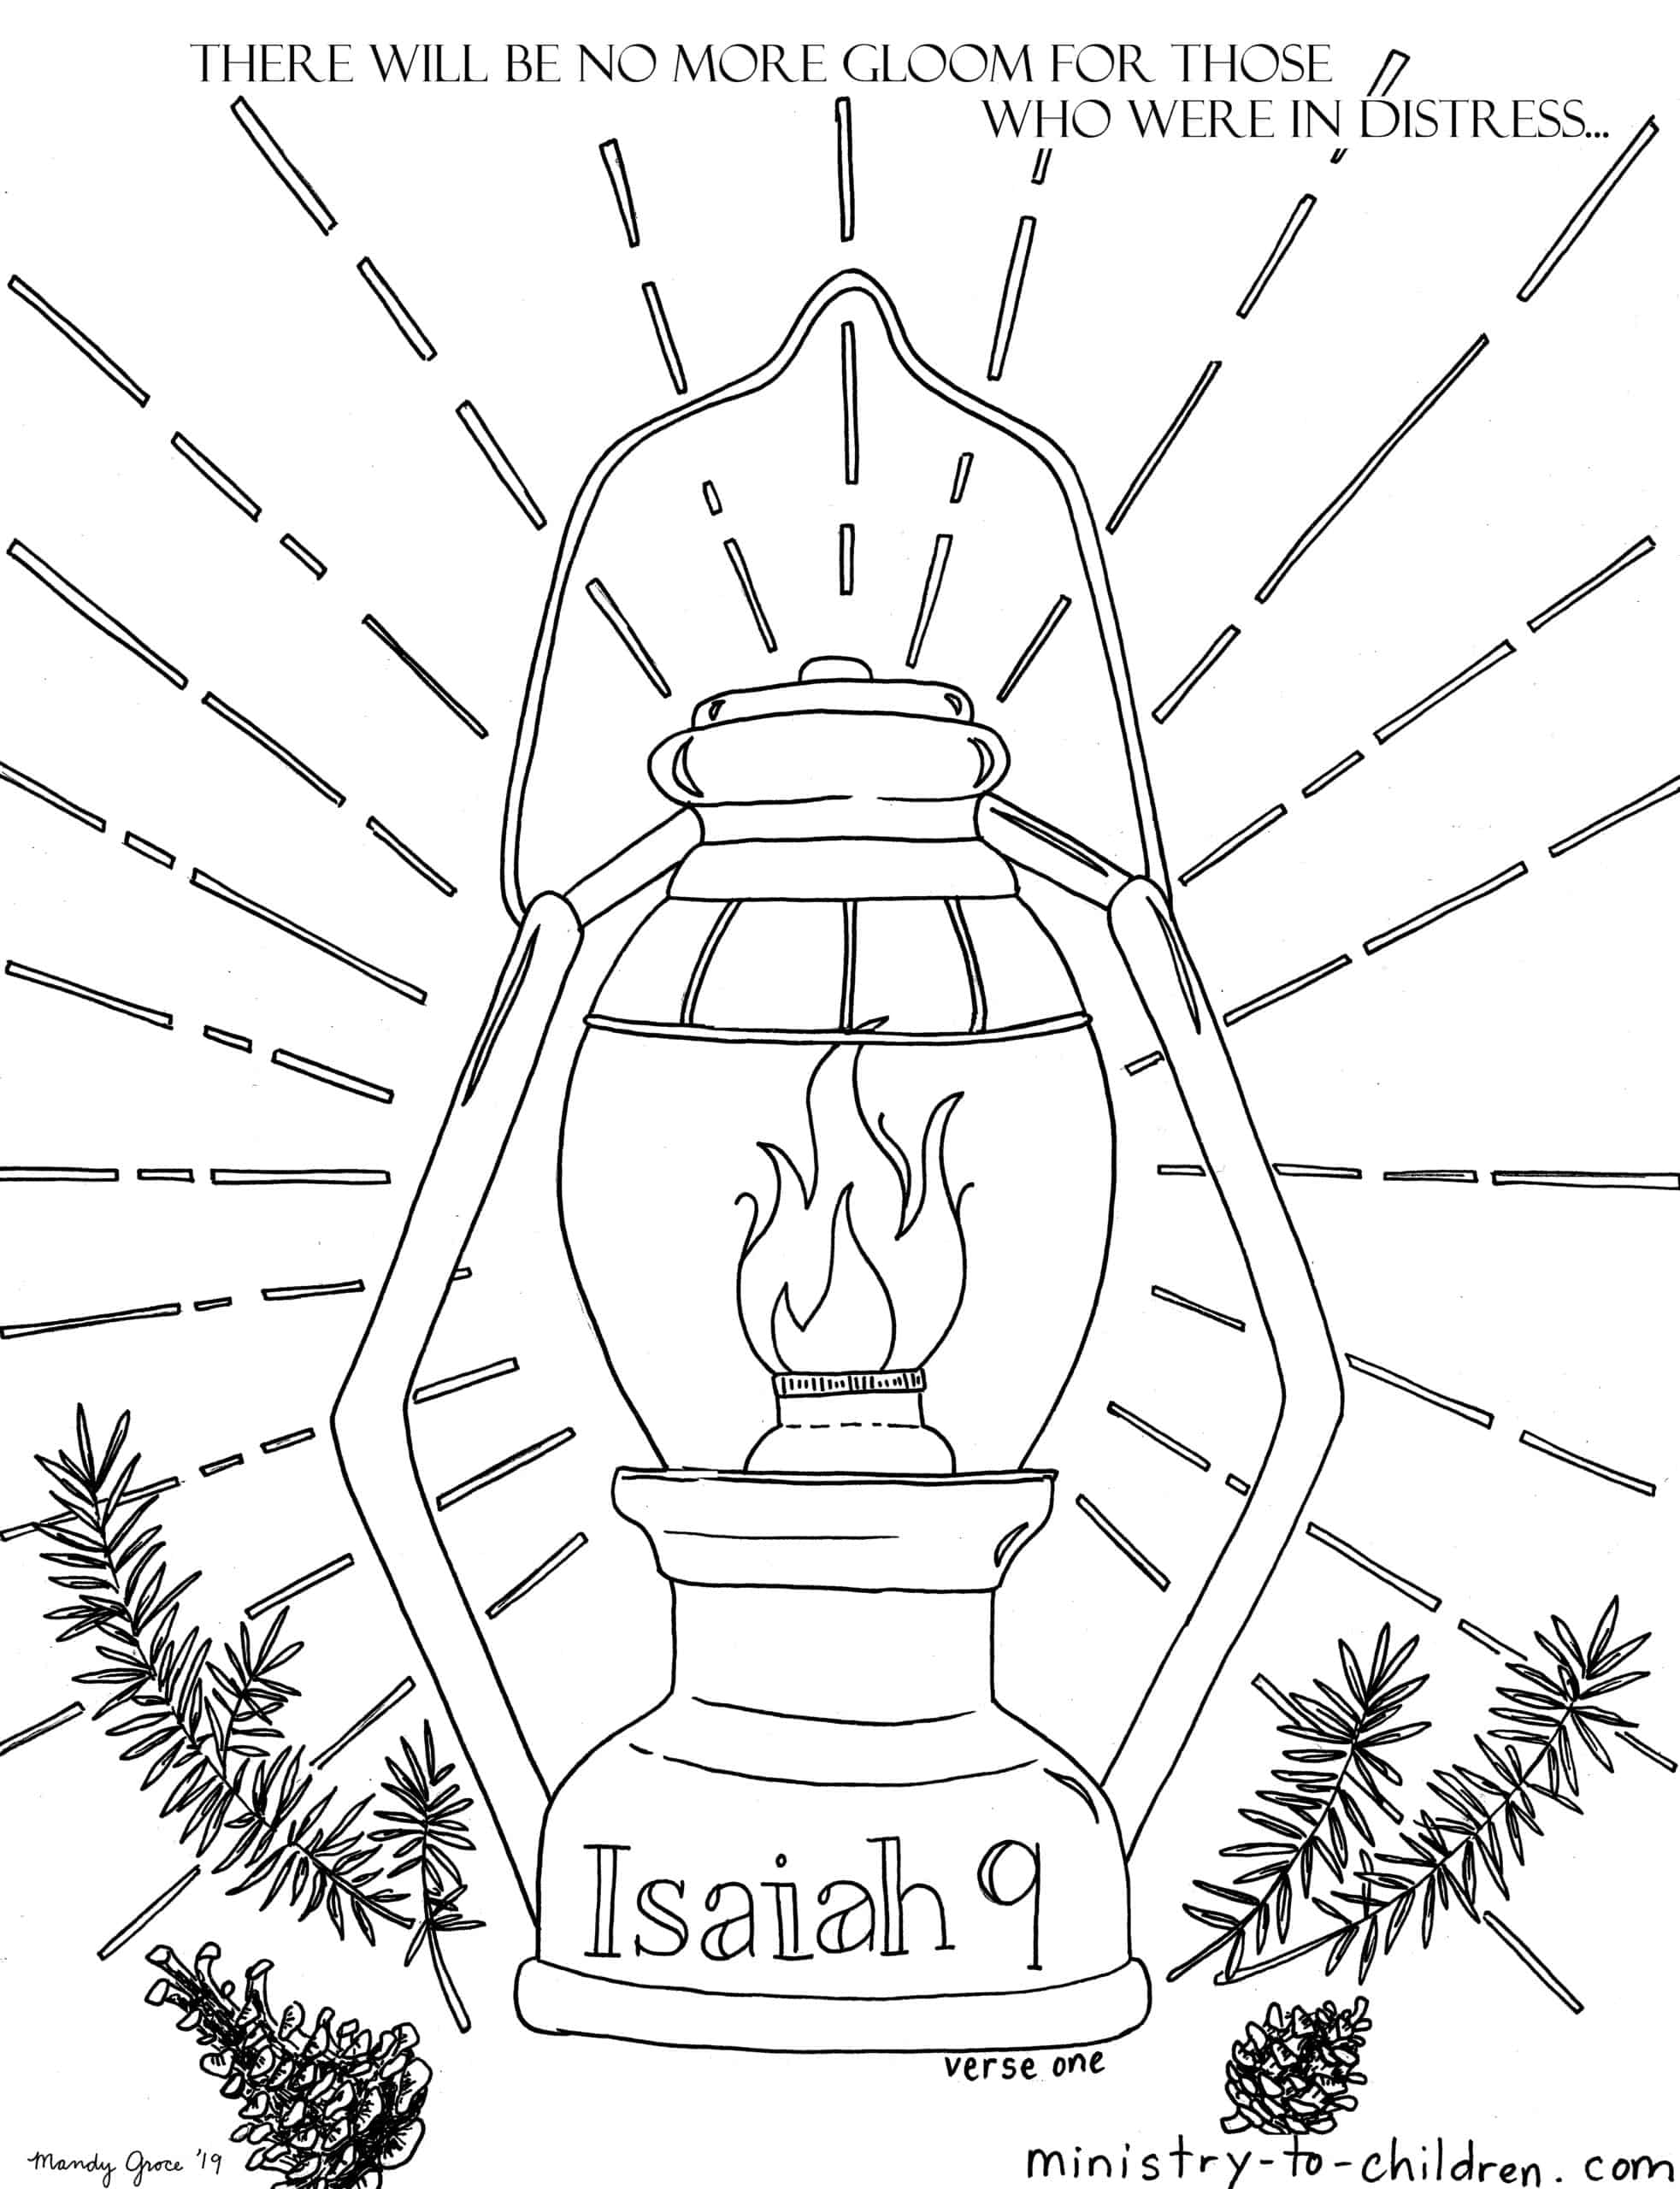 Isaiah 9 Coloring Pages: People in darkness have seen a